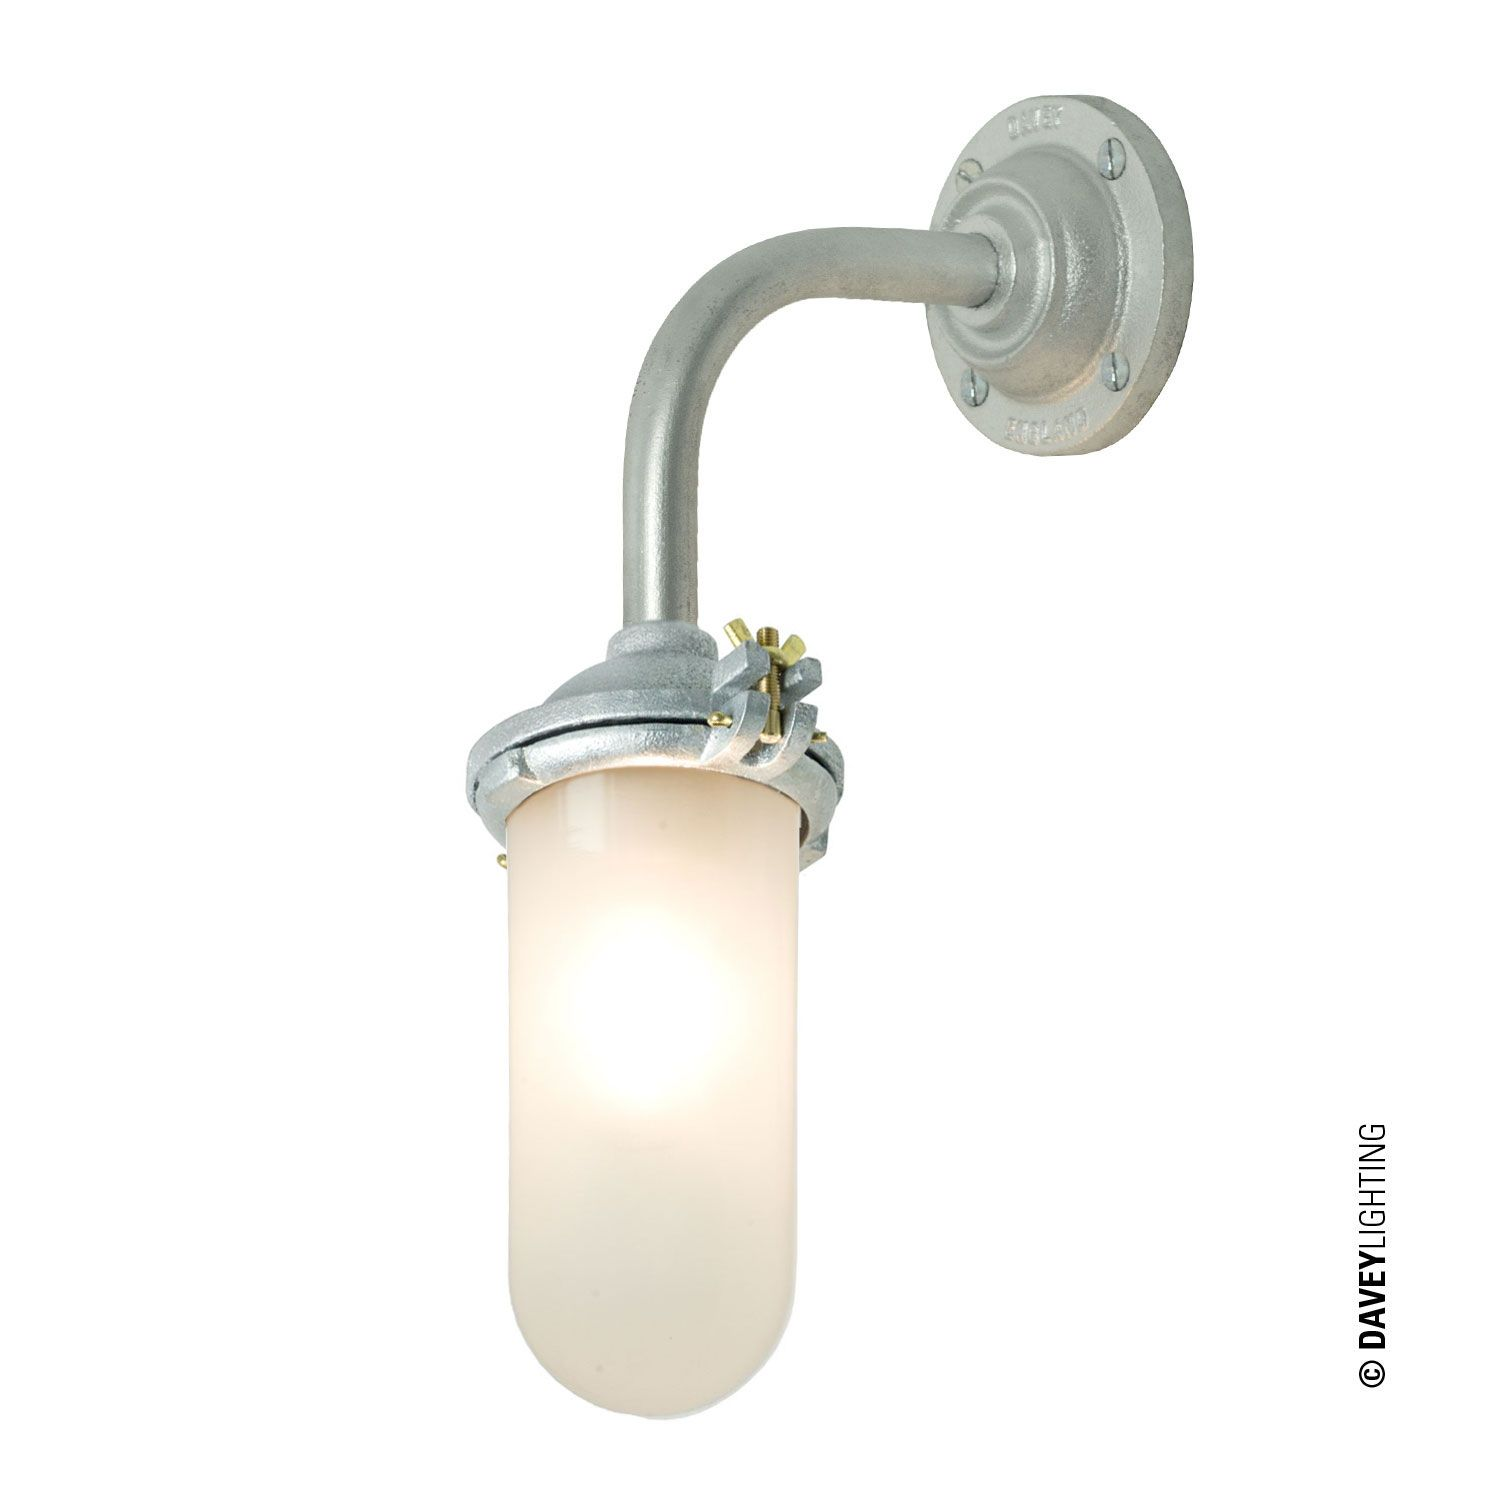 An exterior bracket light with a simple ring that retains the clear